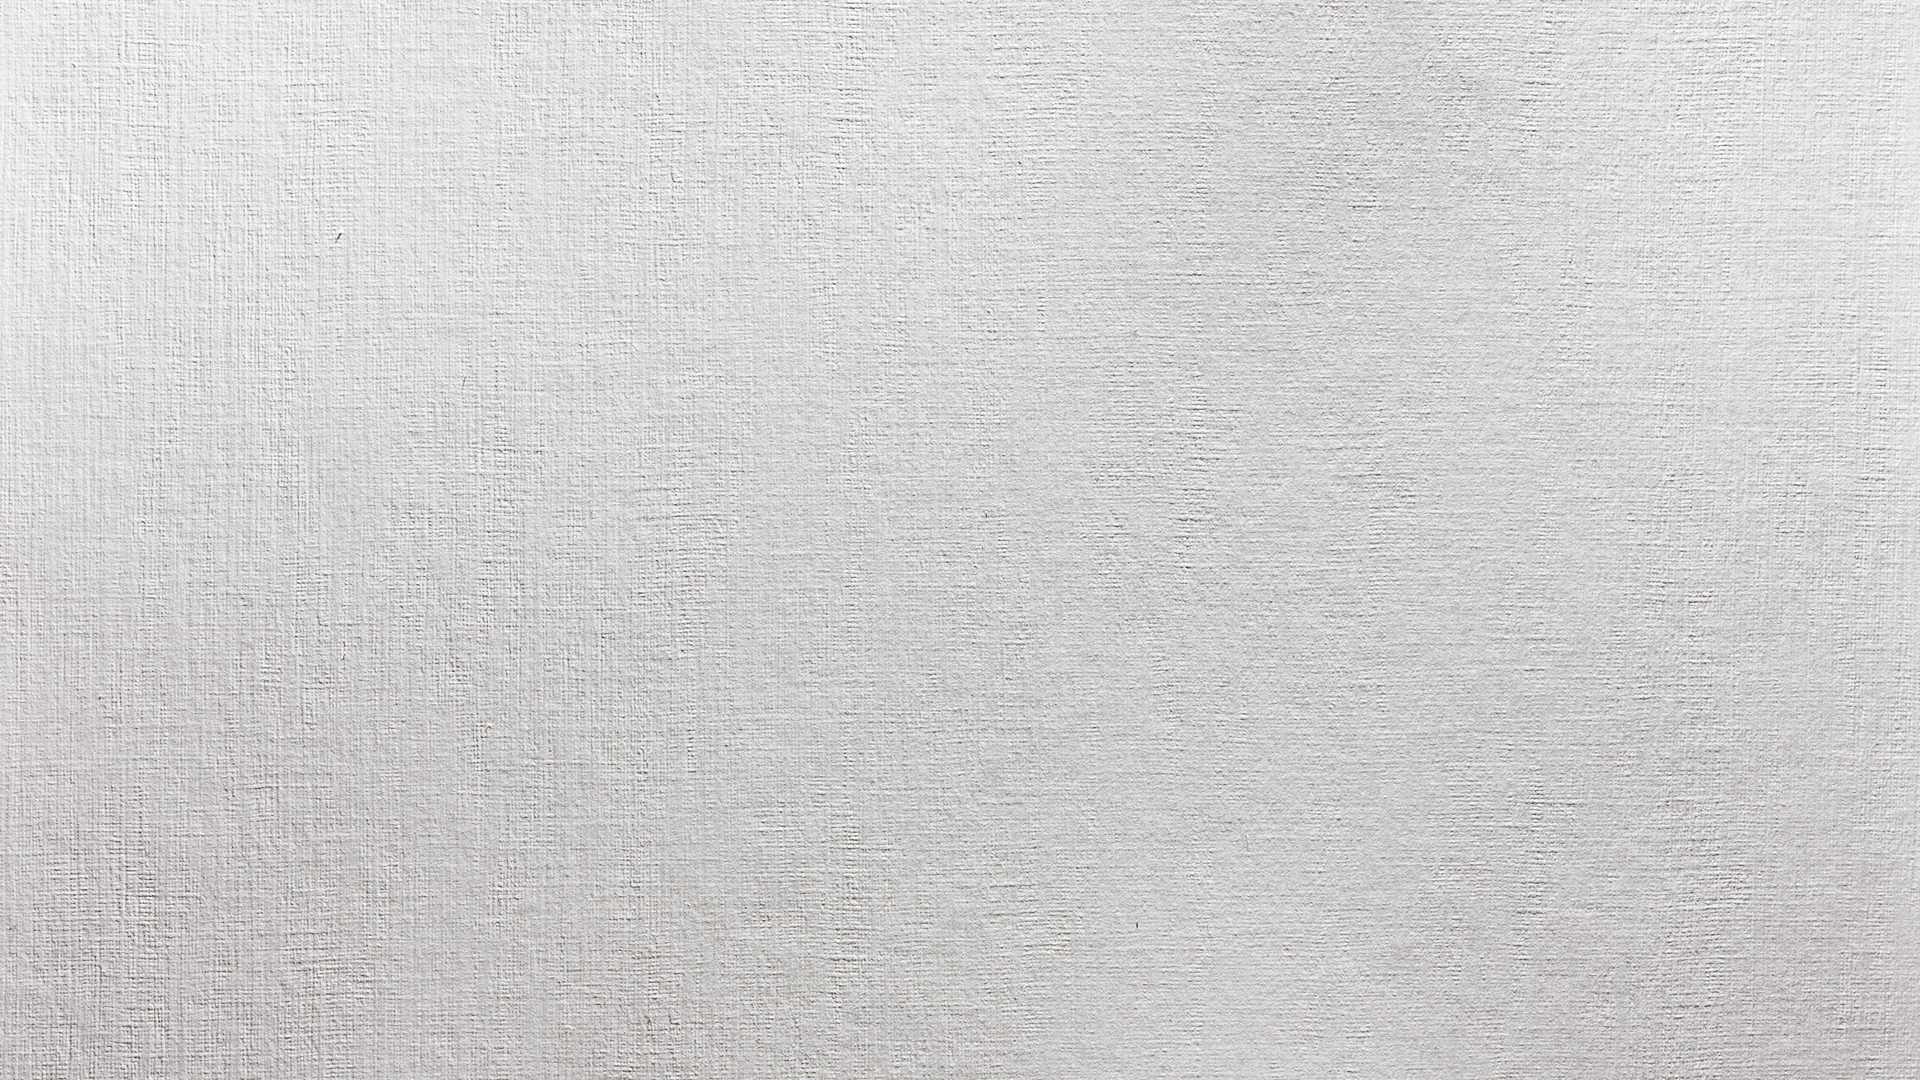 natural-paper-background-texture-hd-5a0b - RSVPify